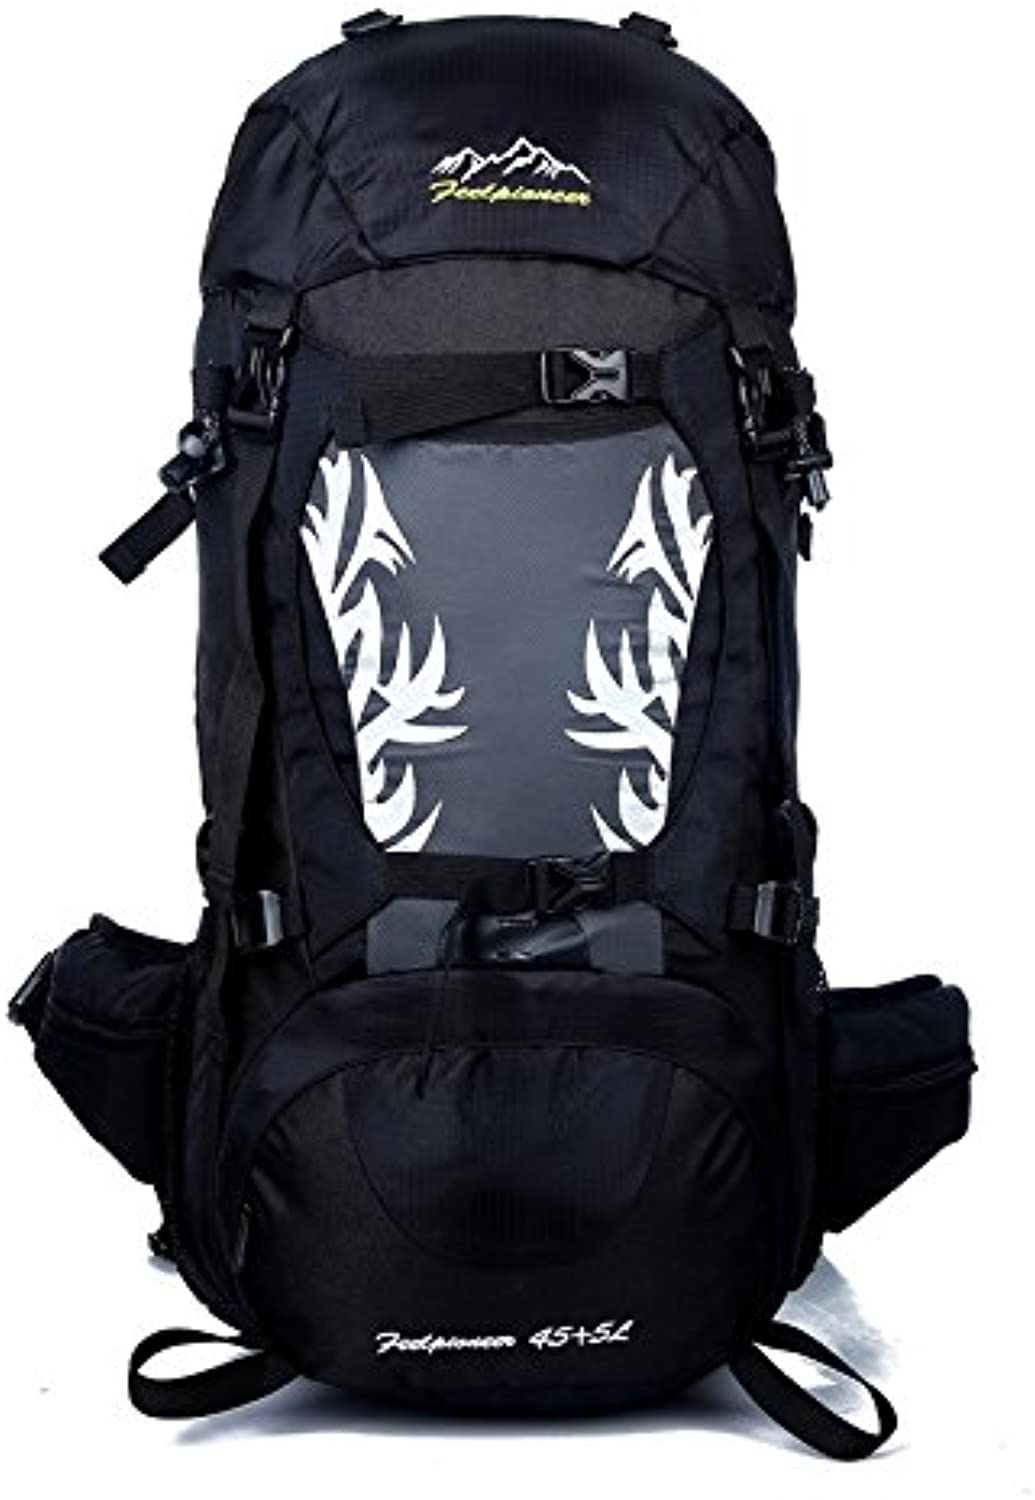 GWQGZ New Outdoor Sports Mountaineering Bag Multi Function Camping Travel Backpack